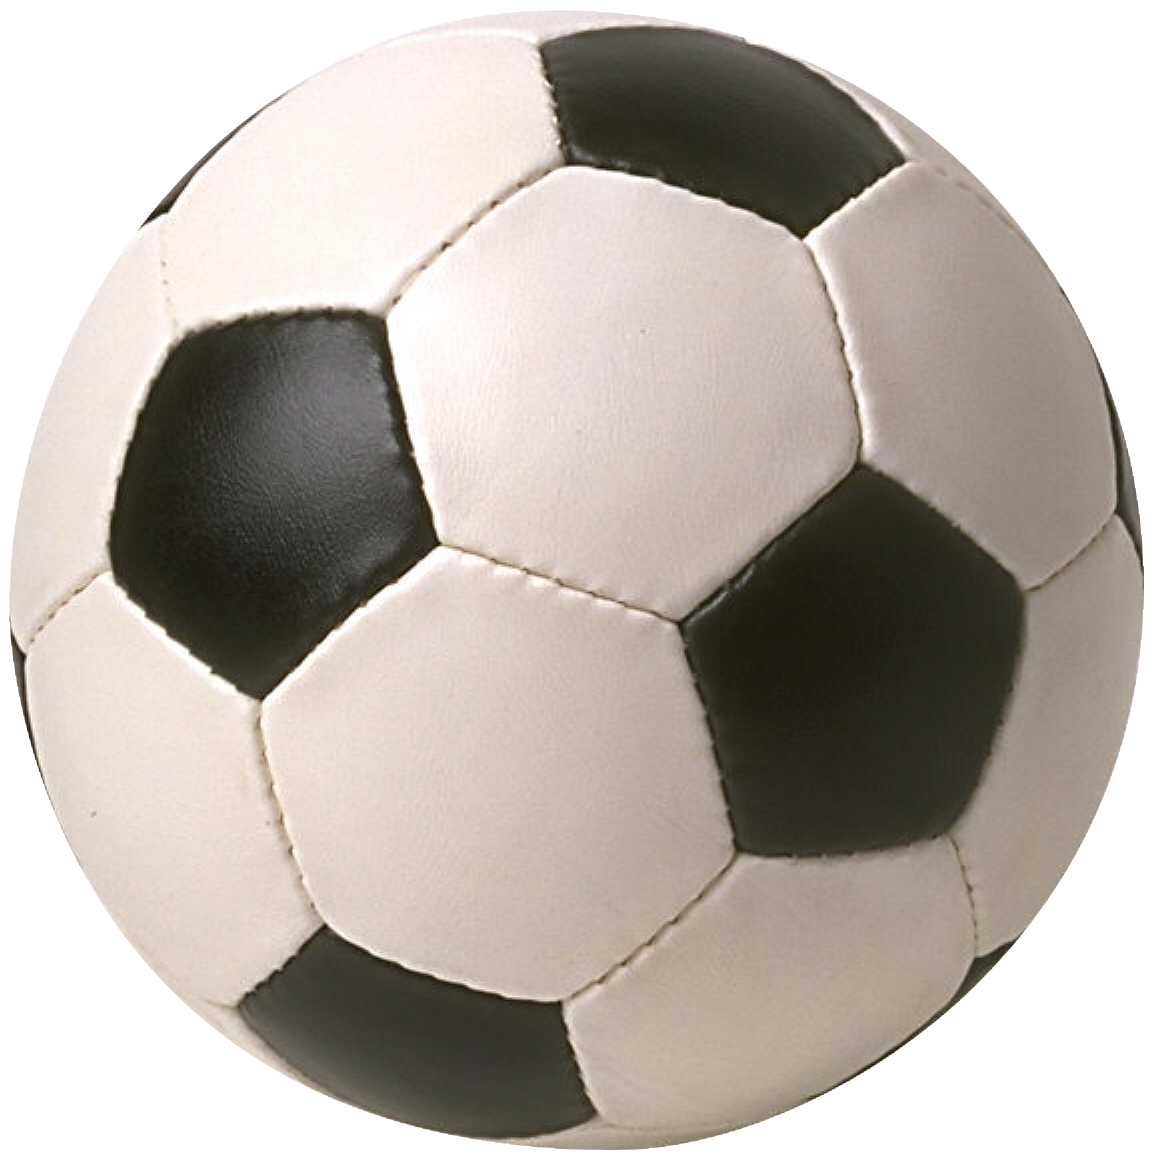 Foot ball png. Best football collections image